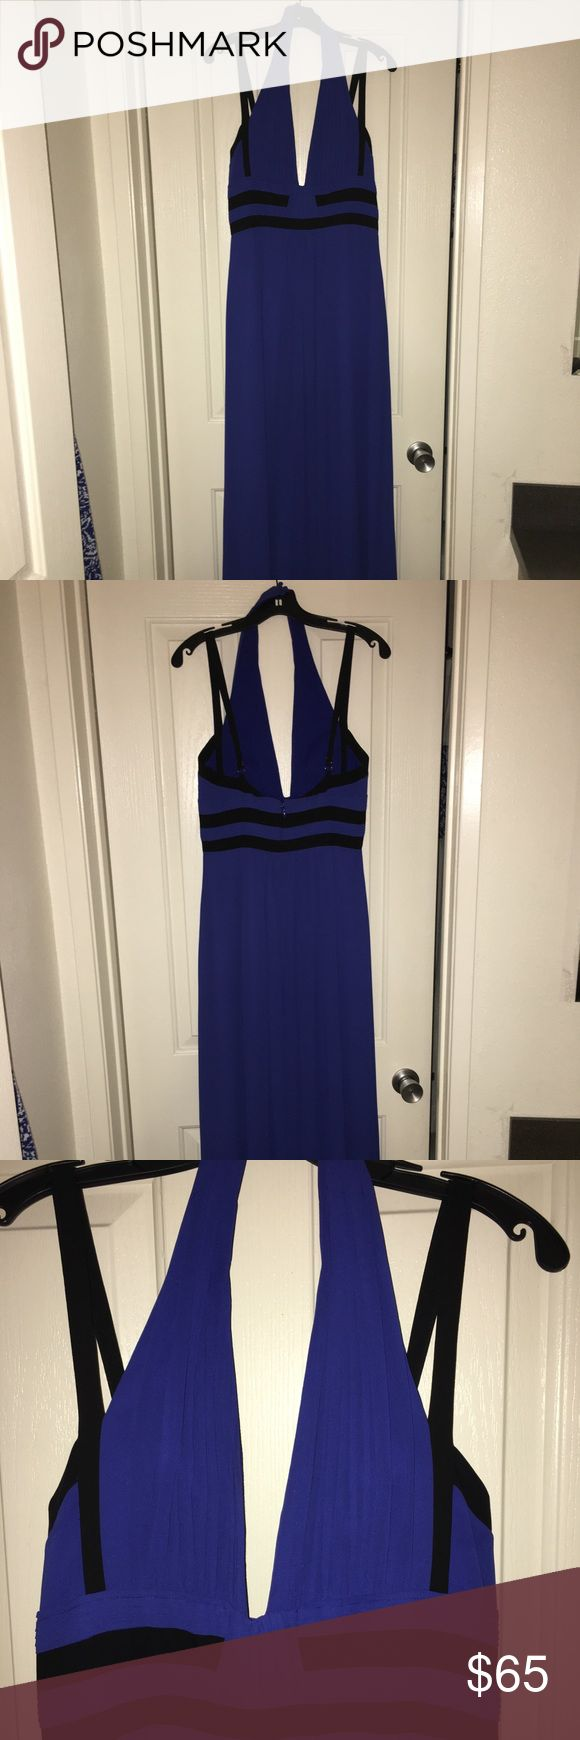 NWT Royal Blue BCBGMaxazria gown Beautiful brand new Bcbg gown (size 8). It's super flattering - empire waisted dress. I just bought this final sale but found a different dress to wear to an upcoming event. Feel free to make an offer :) BCBGMaxAzria Dresses Maxi